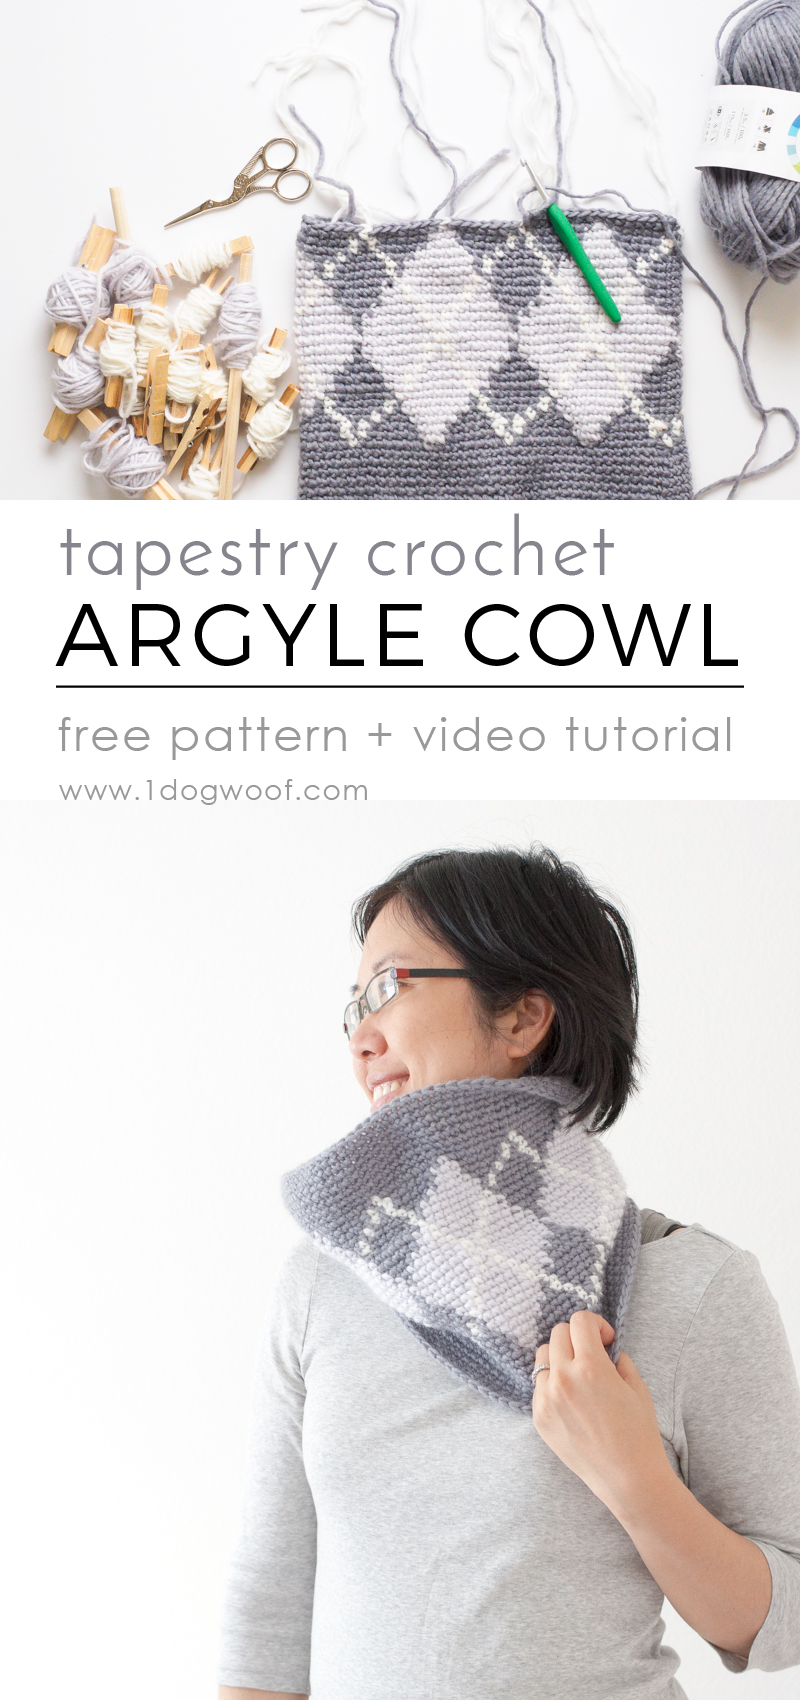 Silverstone Argyle Cowl - free tapestry crochet + video tutorial | www.1dogwoof.com